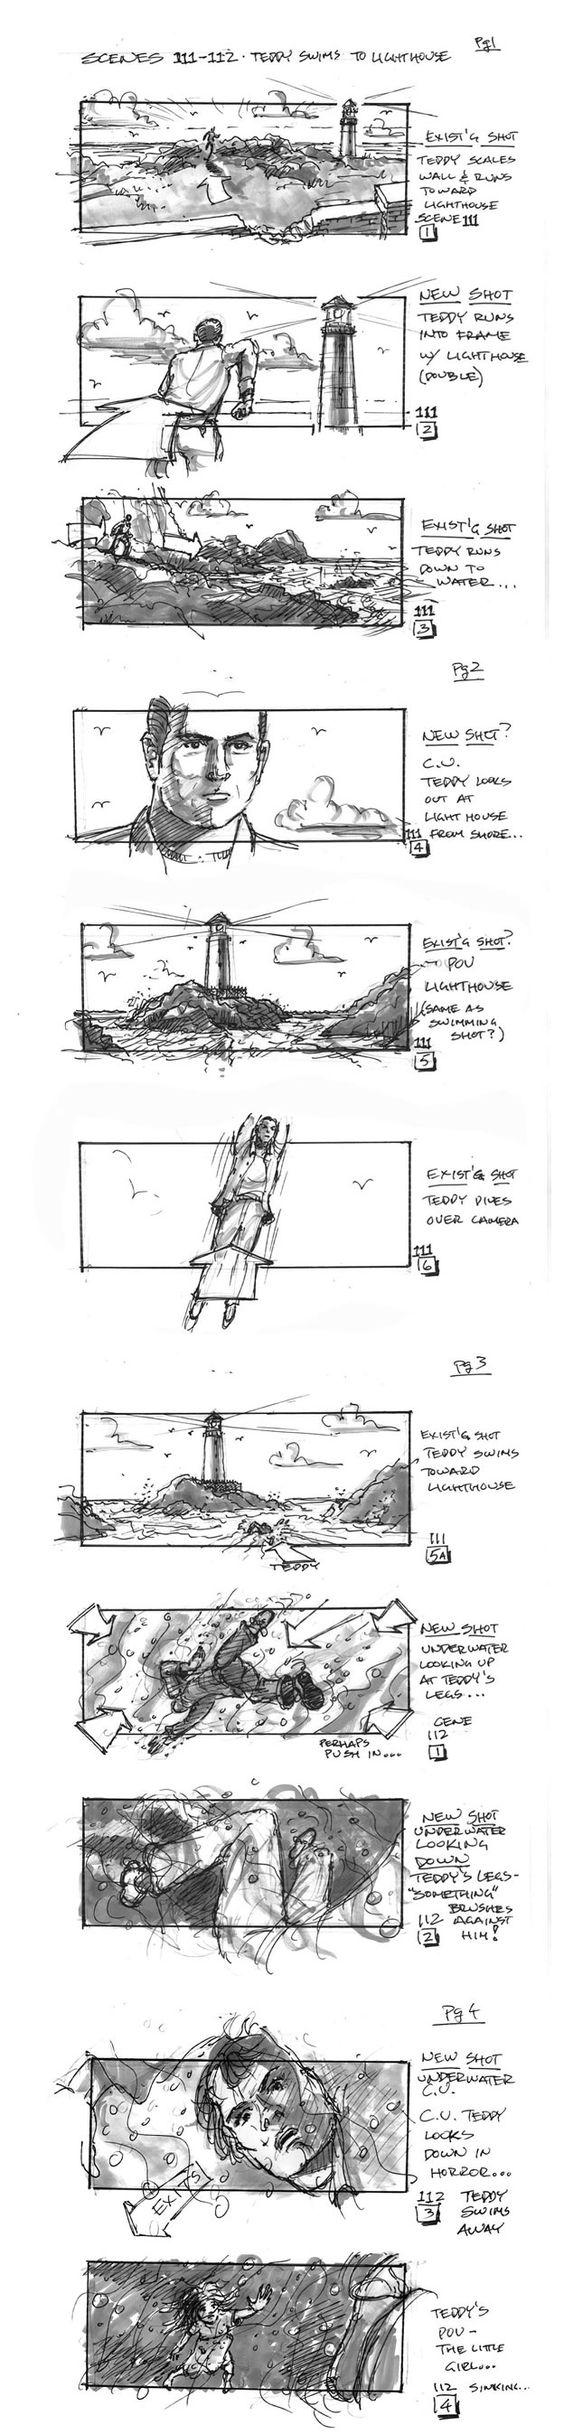 """famous movie storyboards """"Nice, efficient and dramatic"""" KB"""